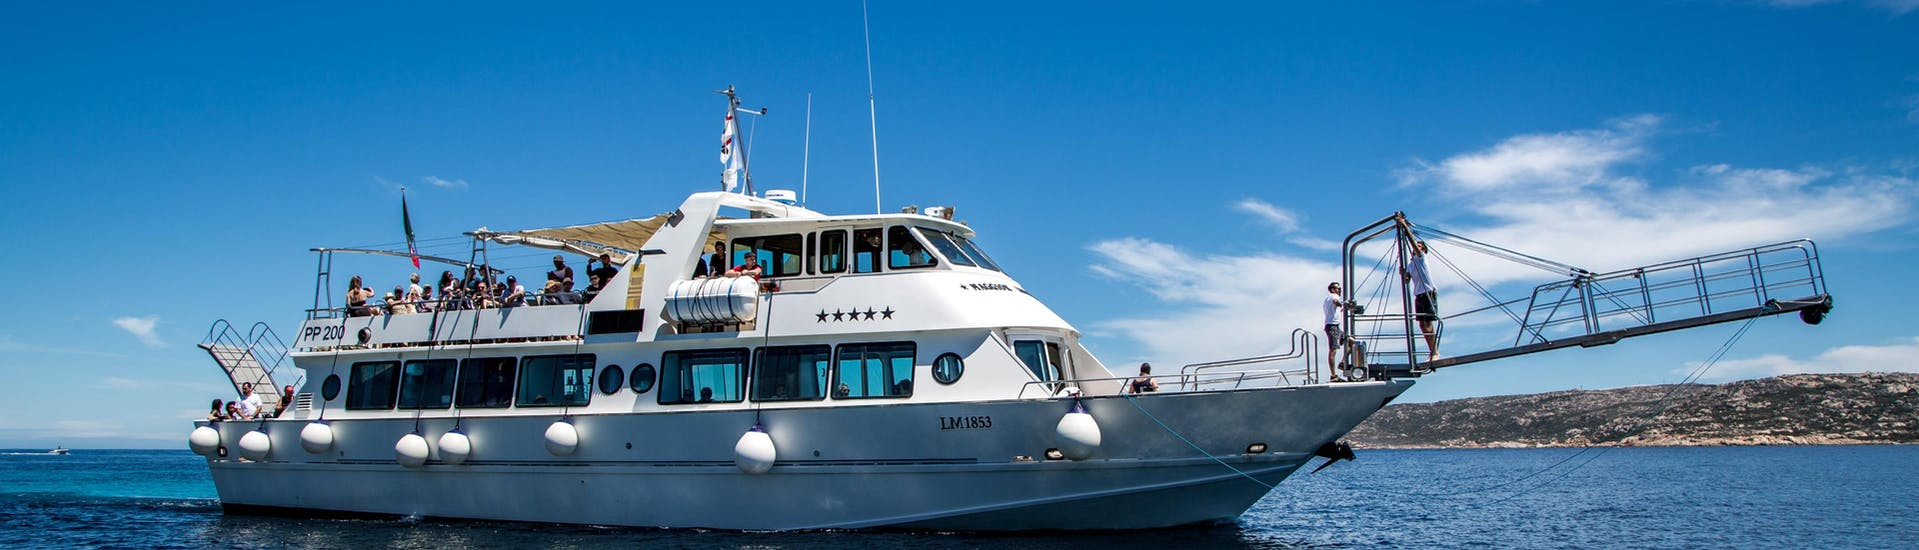 The boat from Maggior Leggero Tour is about to depart for the Boat Trip to La Maddalena Archipelago.